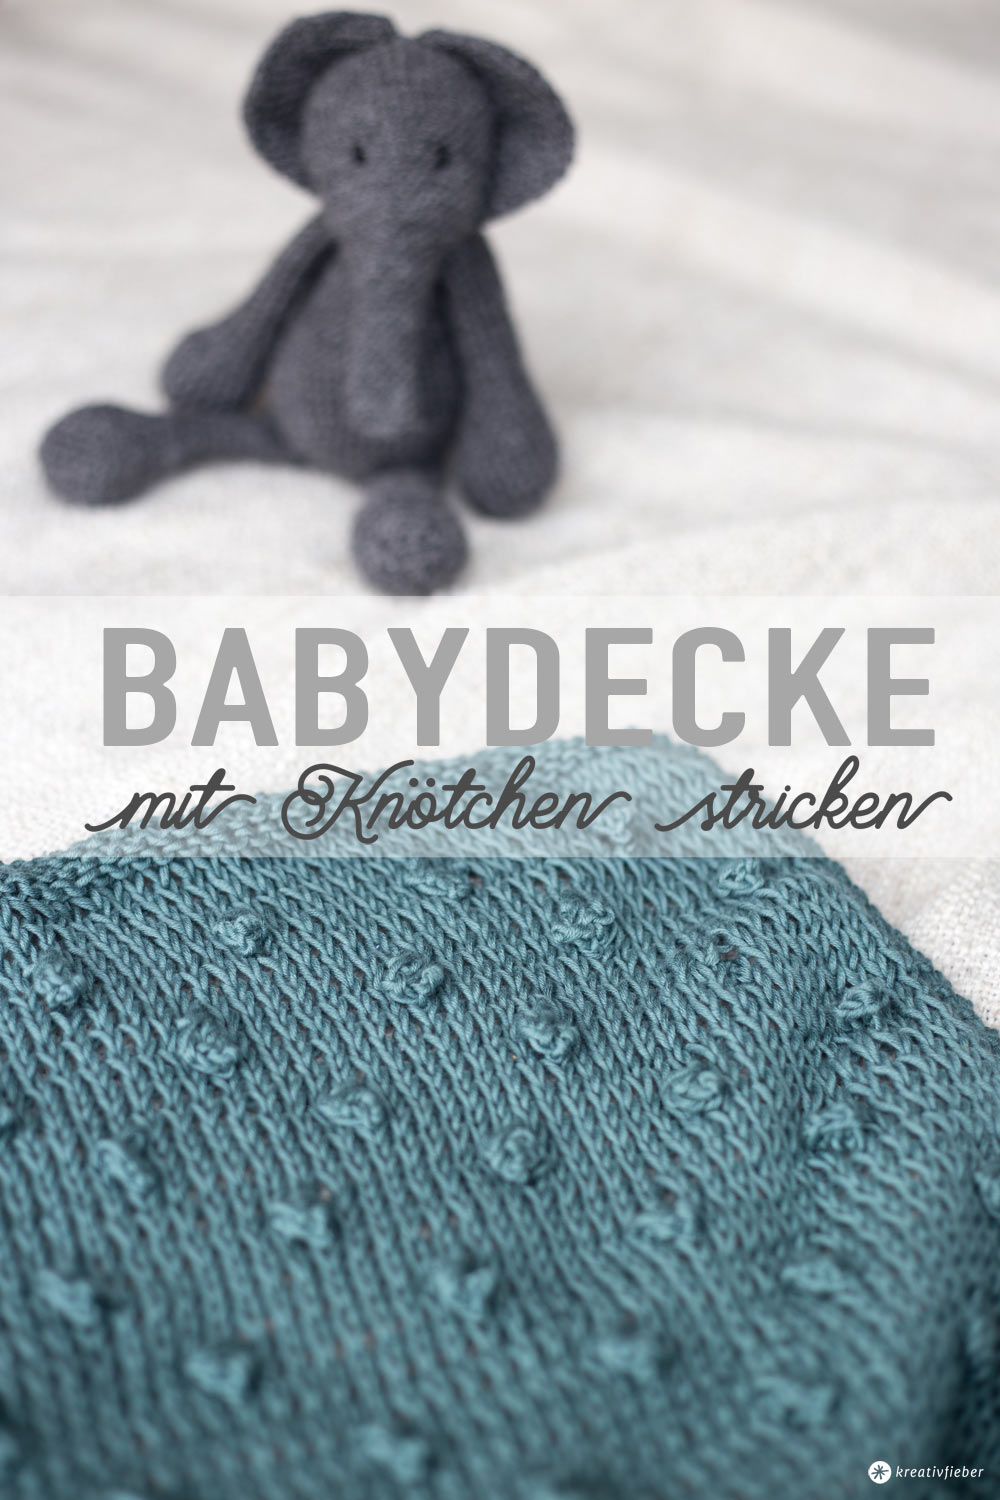 diy babydecke mit kn tchen stricken mit weareknitters gewinnspiel. Black Bedroom Furniture Sets. Home Design Ideas